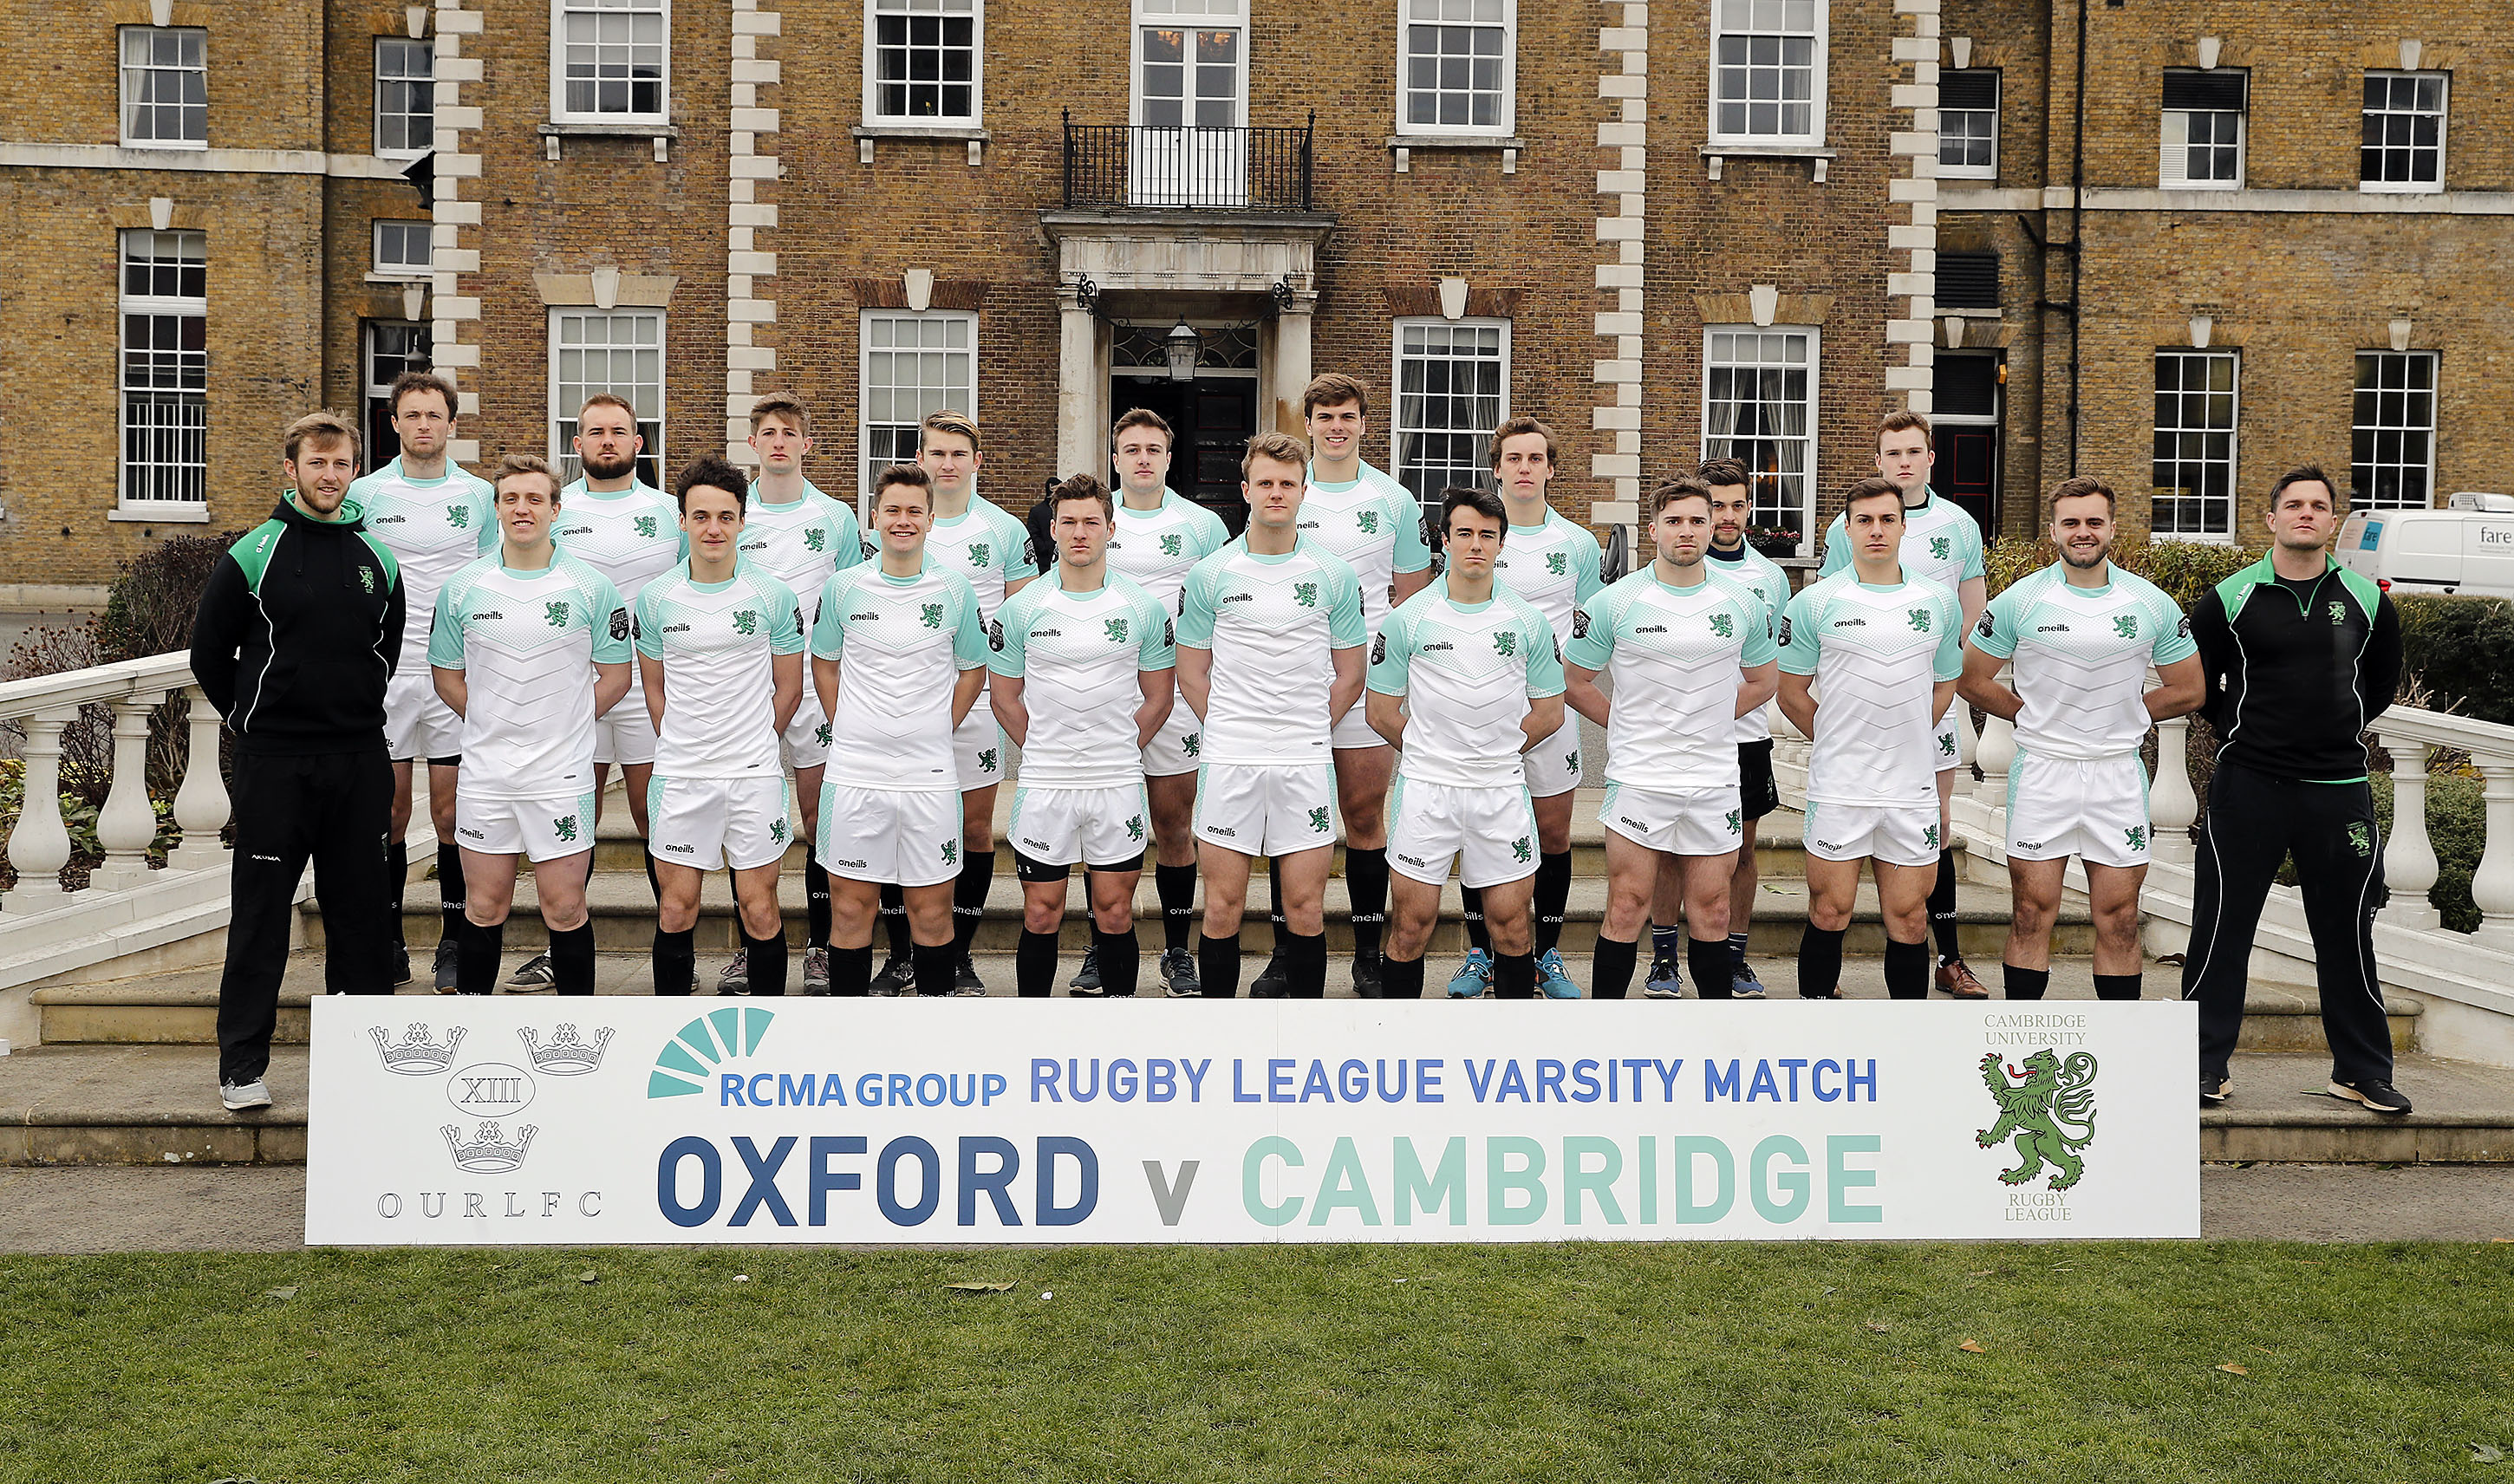 Cambridge University team photo during the RCMA Varsity Rugby League game between Cambridge University and Oxford University at the HAC Ground, Moorgate, London on Fri Mar 9, 2018